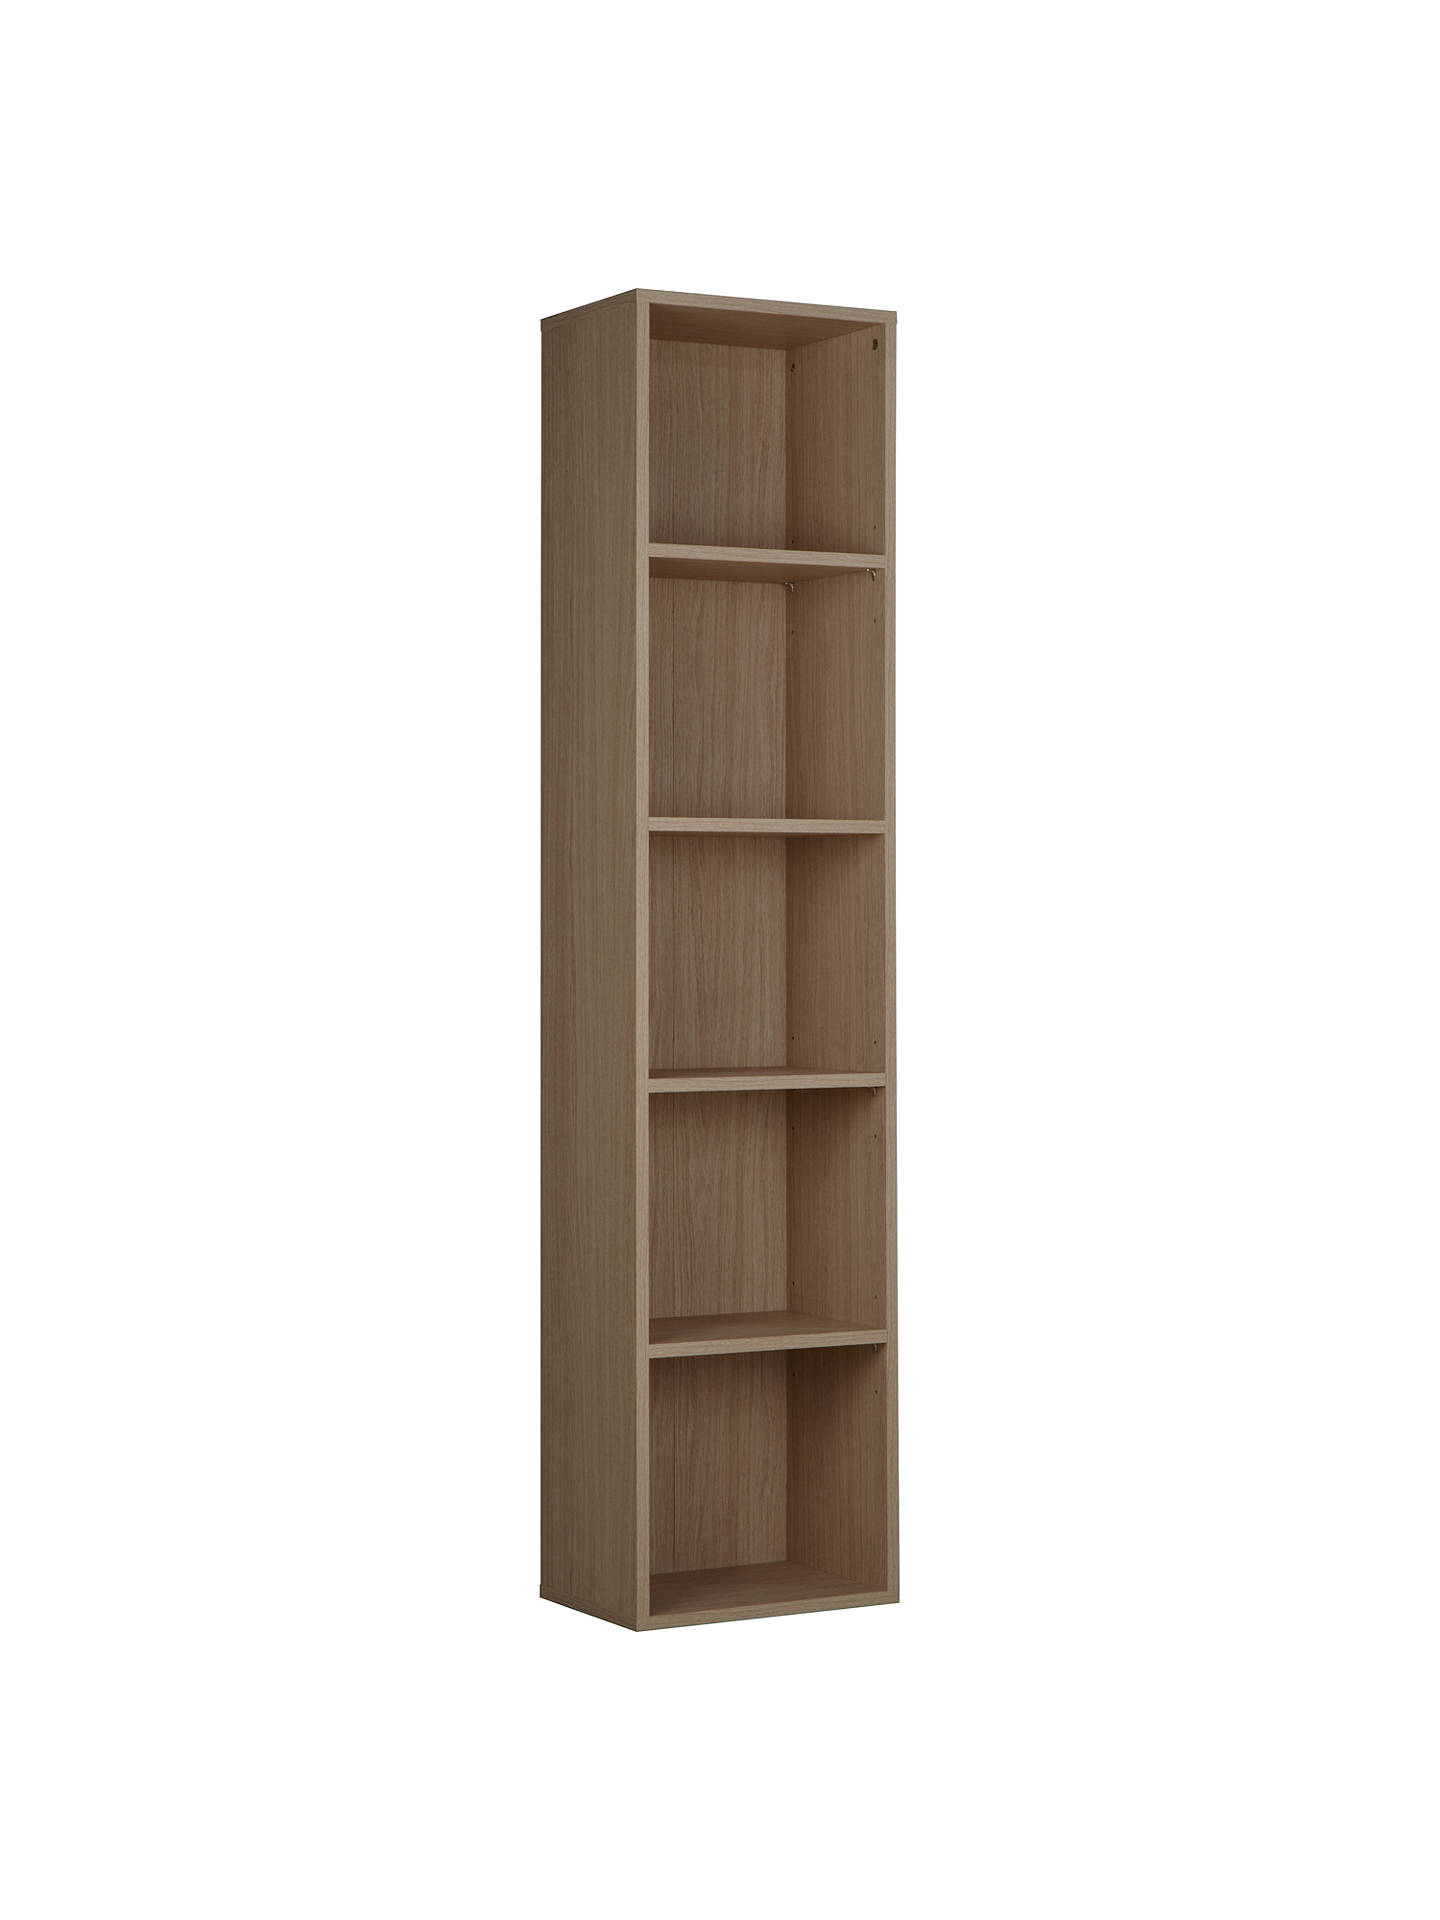 Buyjohn lewis the basics dexter tall narrow bookcase online at johnlewis com